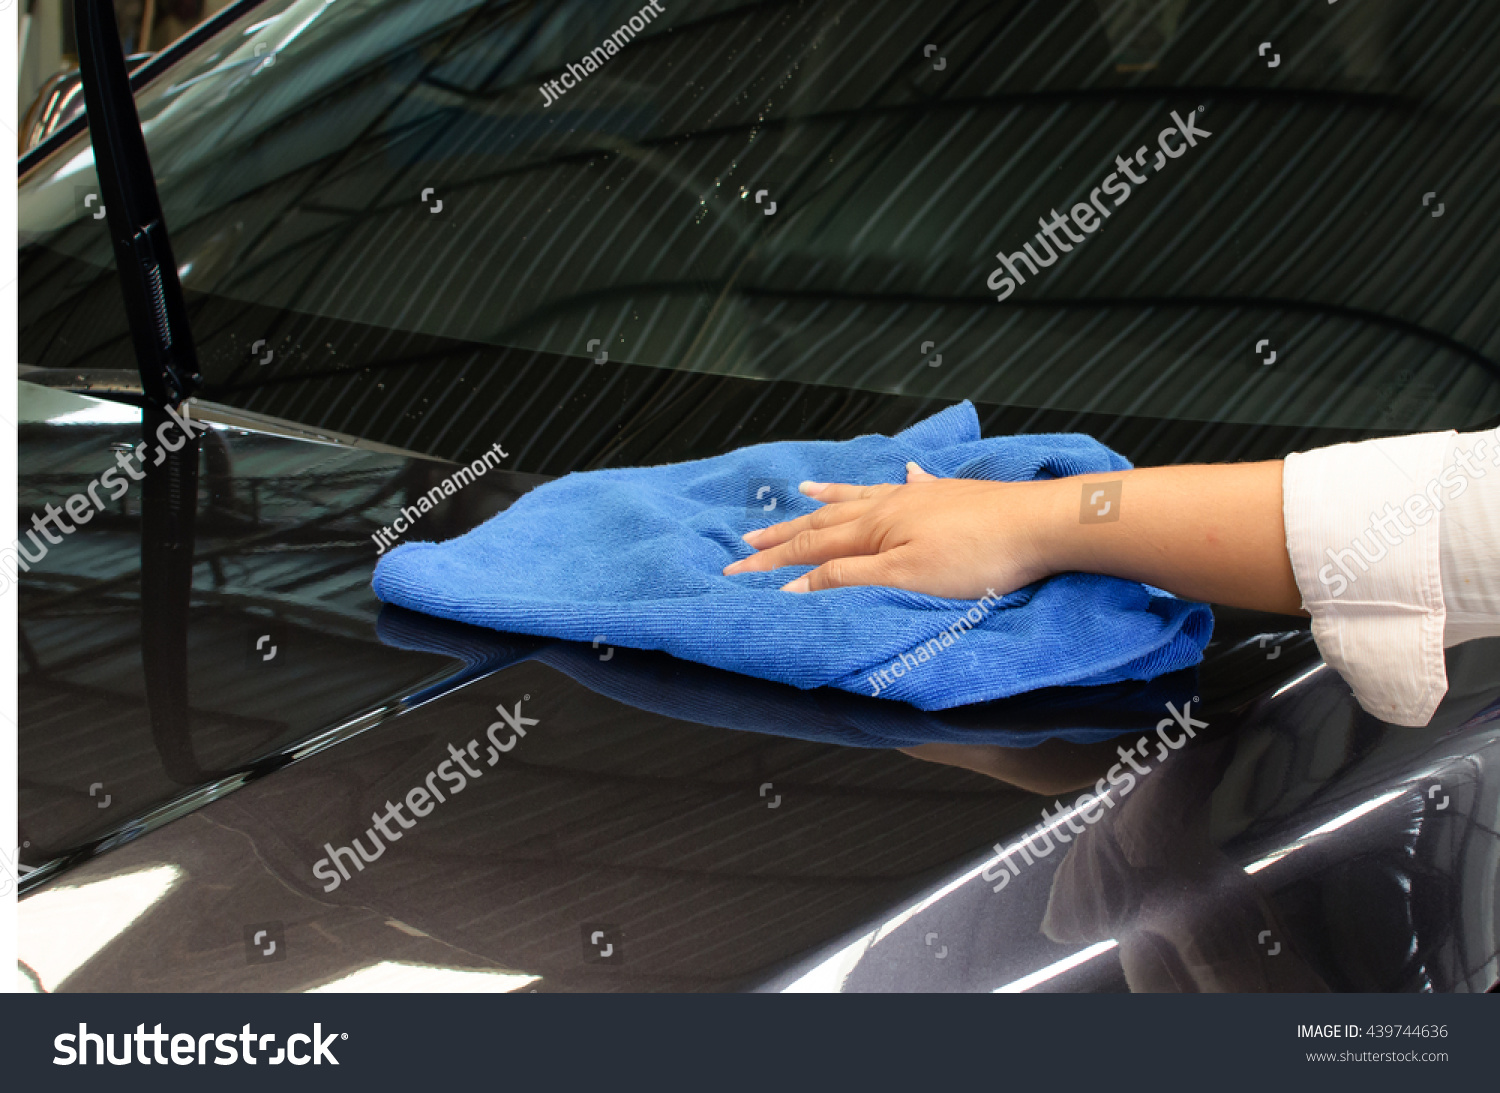 hand with microfiber cloth wipe car surface stock photo 439744636 shutterstock. Black Bedroom Furniture Sets. Home Design Ideas